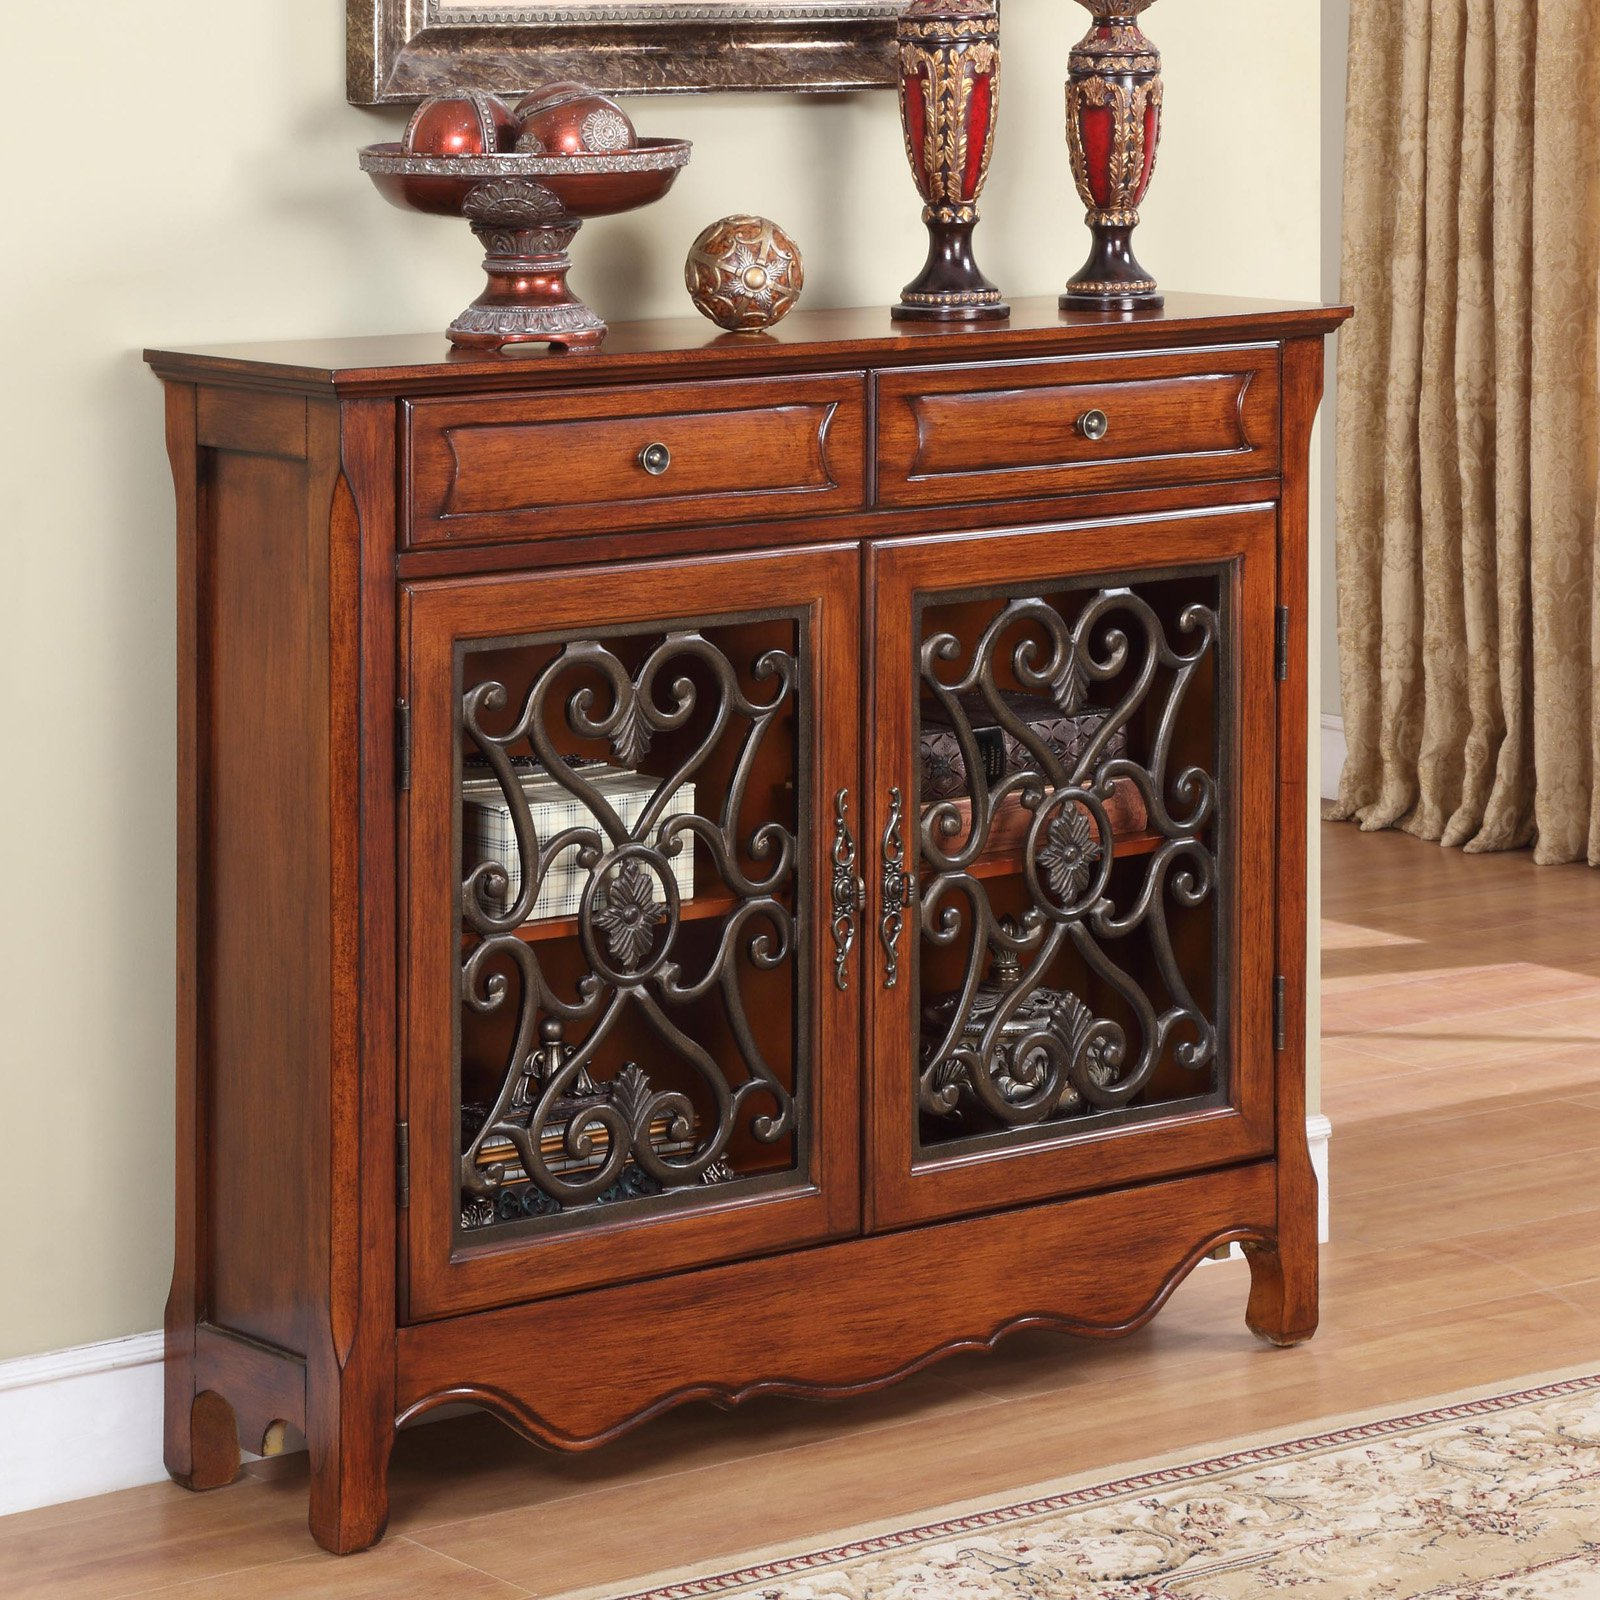 Powell 2 Door, 2 Drawer Scroll Console, Light Cherry by L. Powell